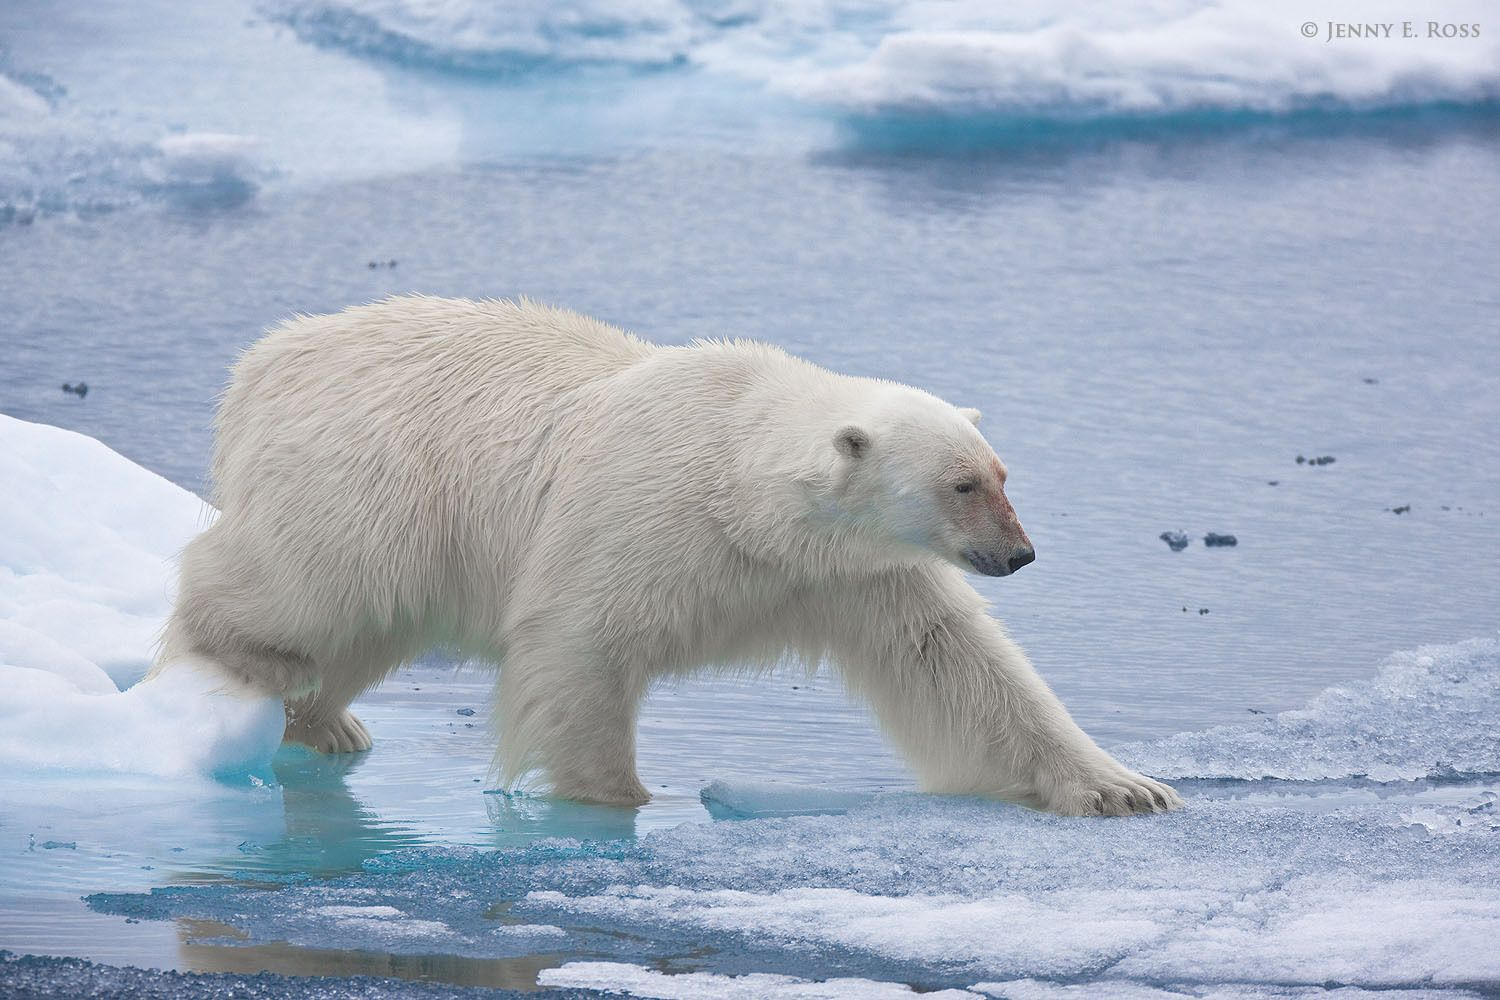 While traveling on melting summer sea ice, an adult male polar bear (Ursus maritimus) carefully presses on very thin ice to see if it will hold his weight.